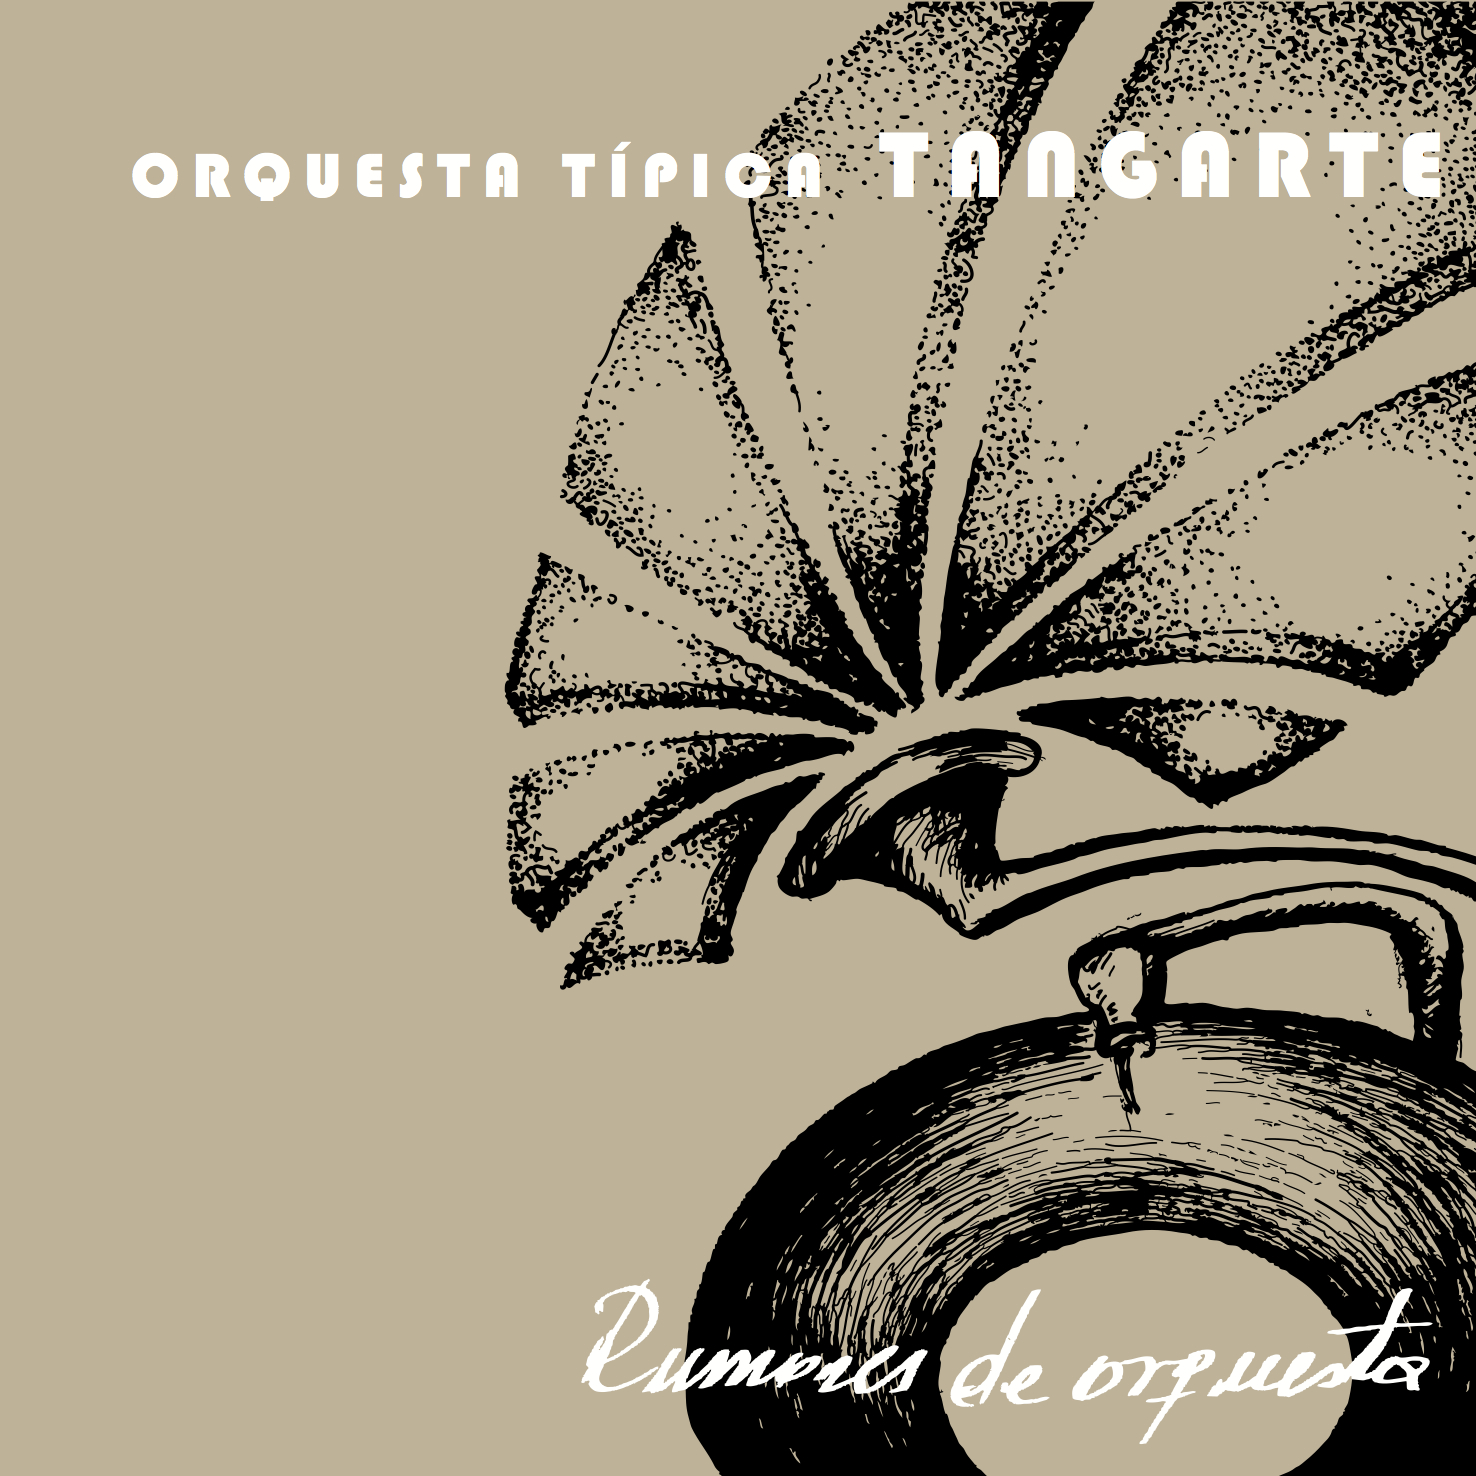 Orquesta Típica Tangarte – Rumores de orquesta.DOWNLOAD: Visit iTunes Music Store or or your favourite download store. SVERIGE: Beställ CD genom att maila till shop@monophon.se: SEK 150 inkl porto inom Sverige (betalning via Payson.se eller faktura, vänligen ange önskad betalningsmetod). INTERNATIONAL ORDERS: Order CD by sending an email to shop@monophon.se: SEK 150 (approx. 15 € / 20 $) incl. international shipping (payment through PayPal - credit cards accepted). Orquesta Típica Tangarte - Rumores de orquesta monophon MPHCD002, 2012.